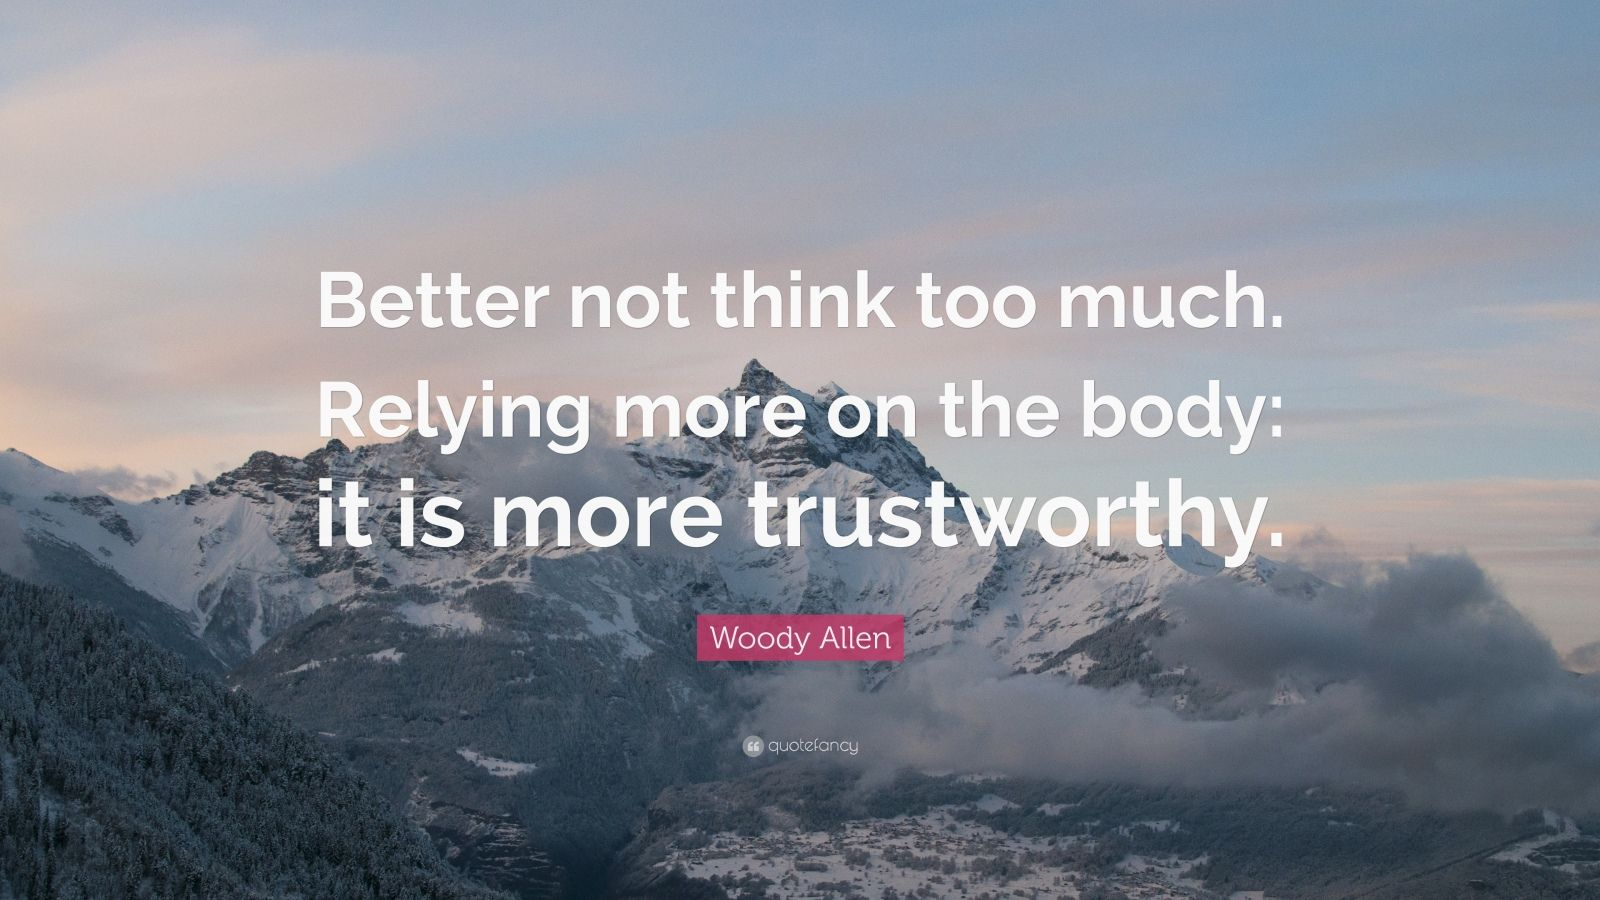 """Woody Allen Quote: """"Better not think too much. Relying more on the body: it is more trustworthy."""""""